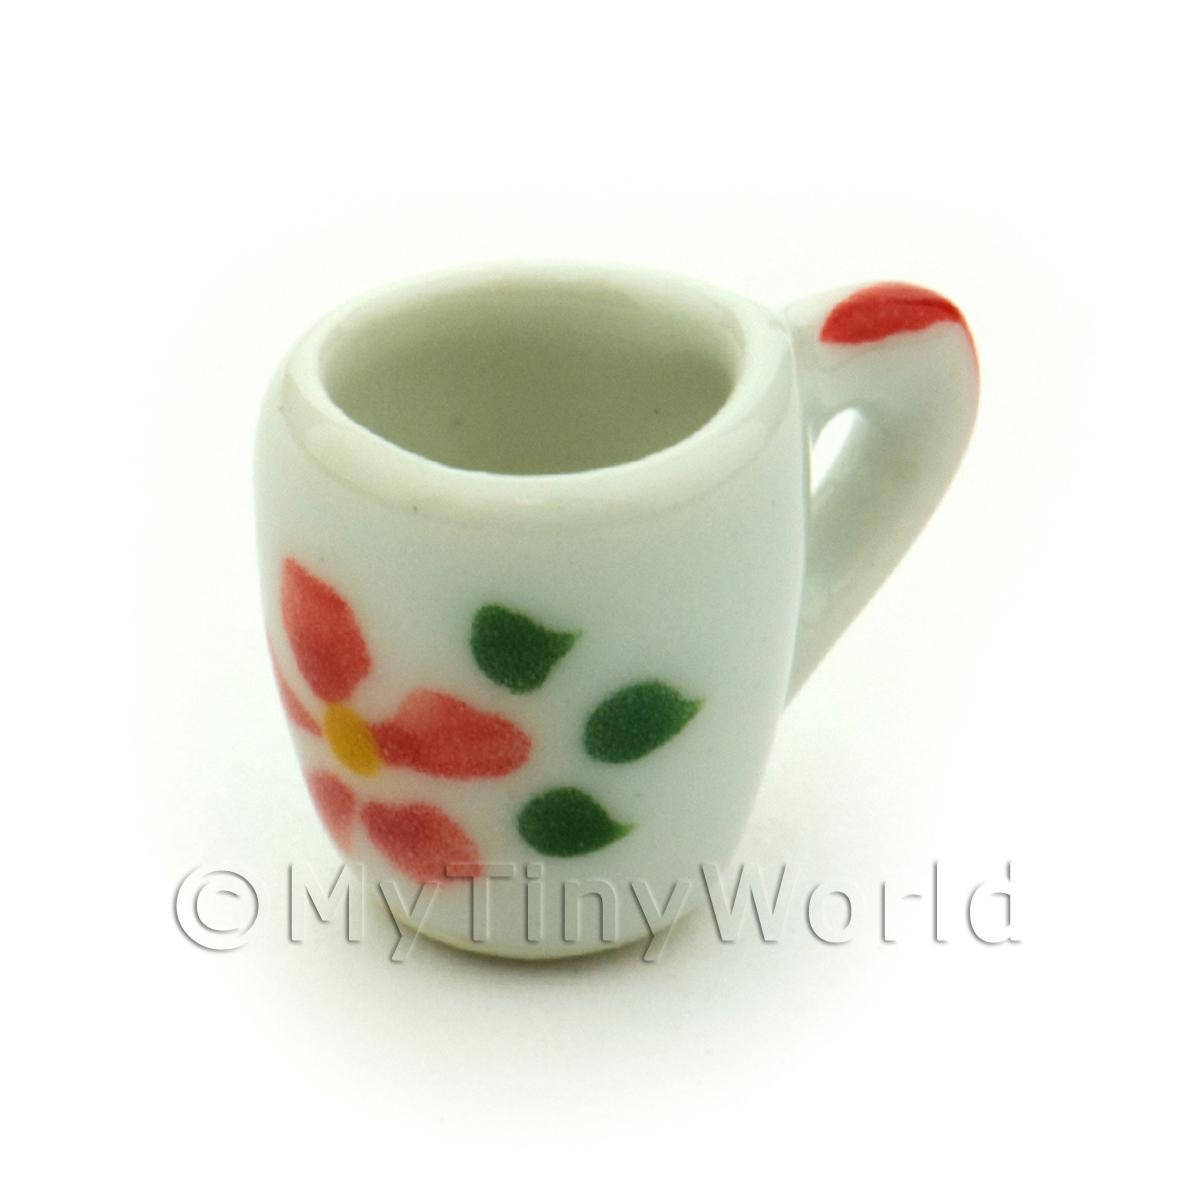 Dolls House Miniature Hibiscus Design Ceramic Soup Mug